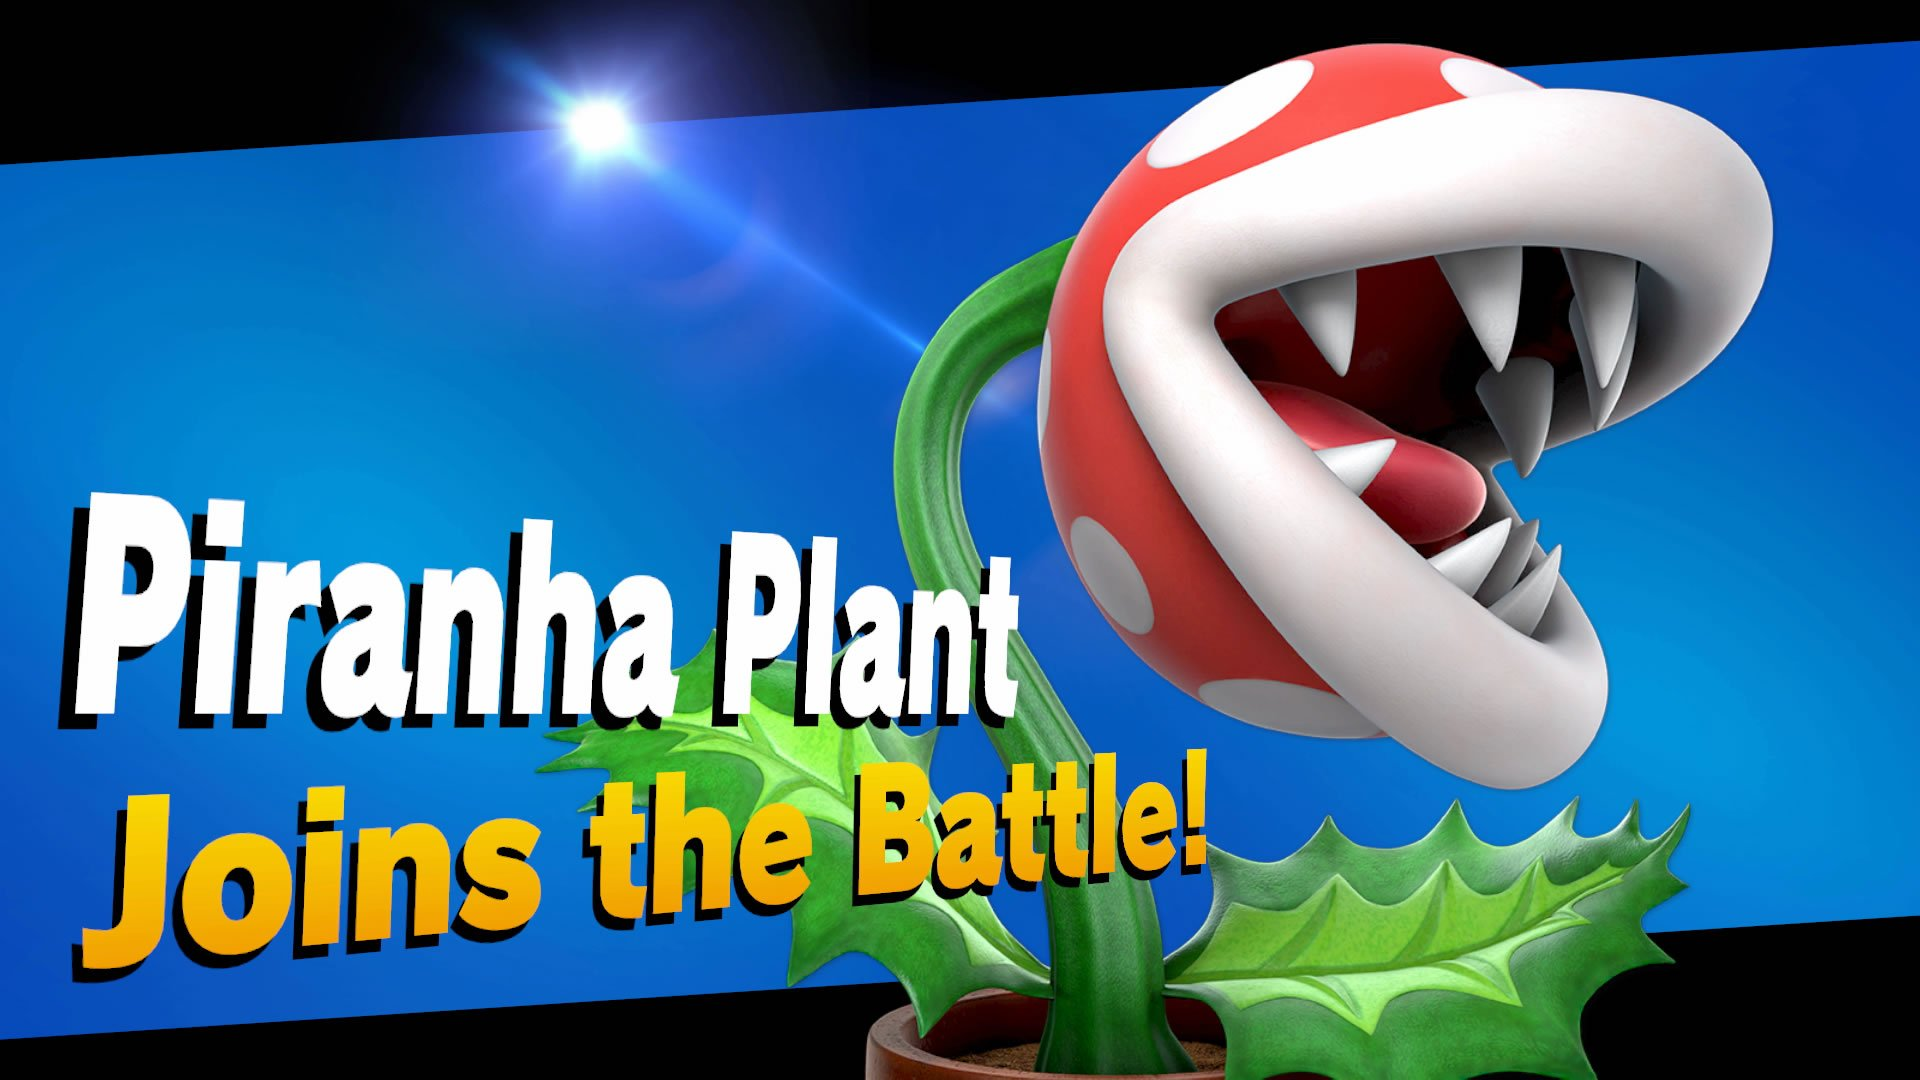 Super Smash Bros  Ultimate Piranha Plant email code not sent | Shacknews